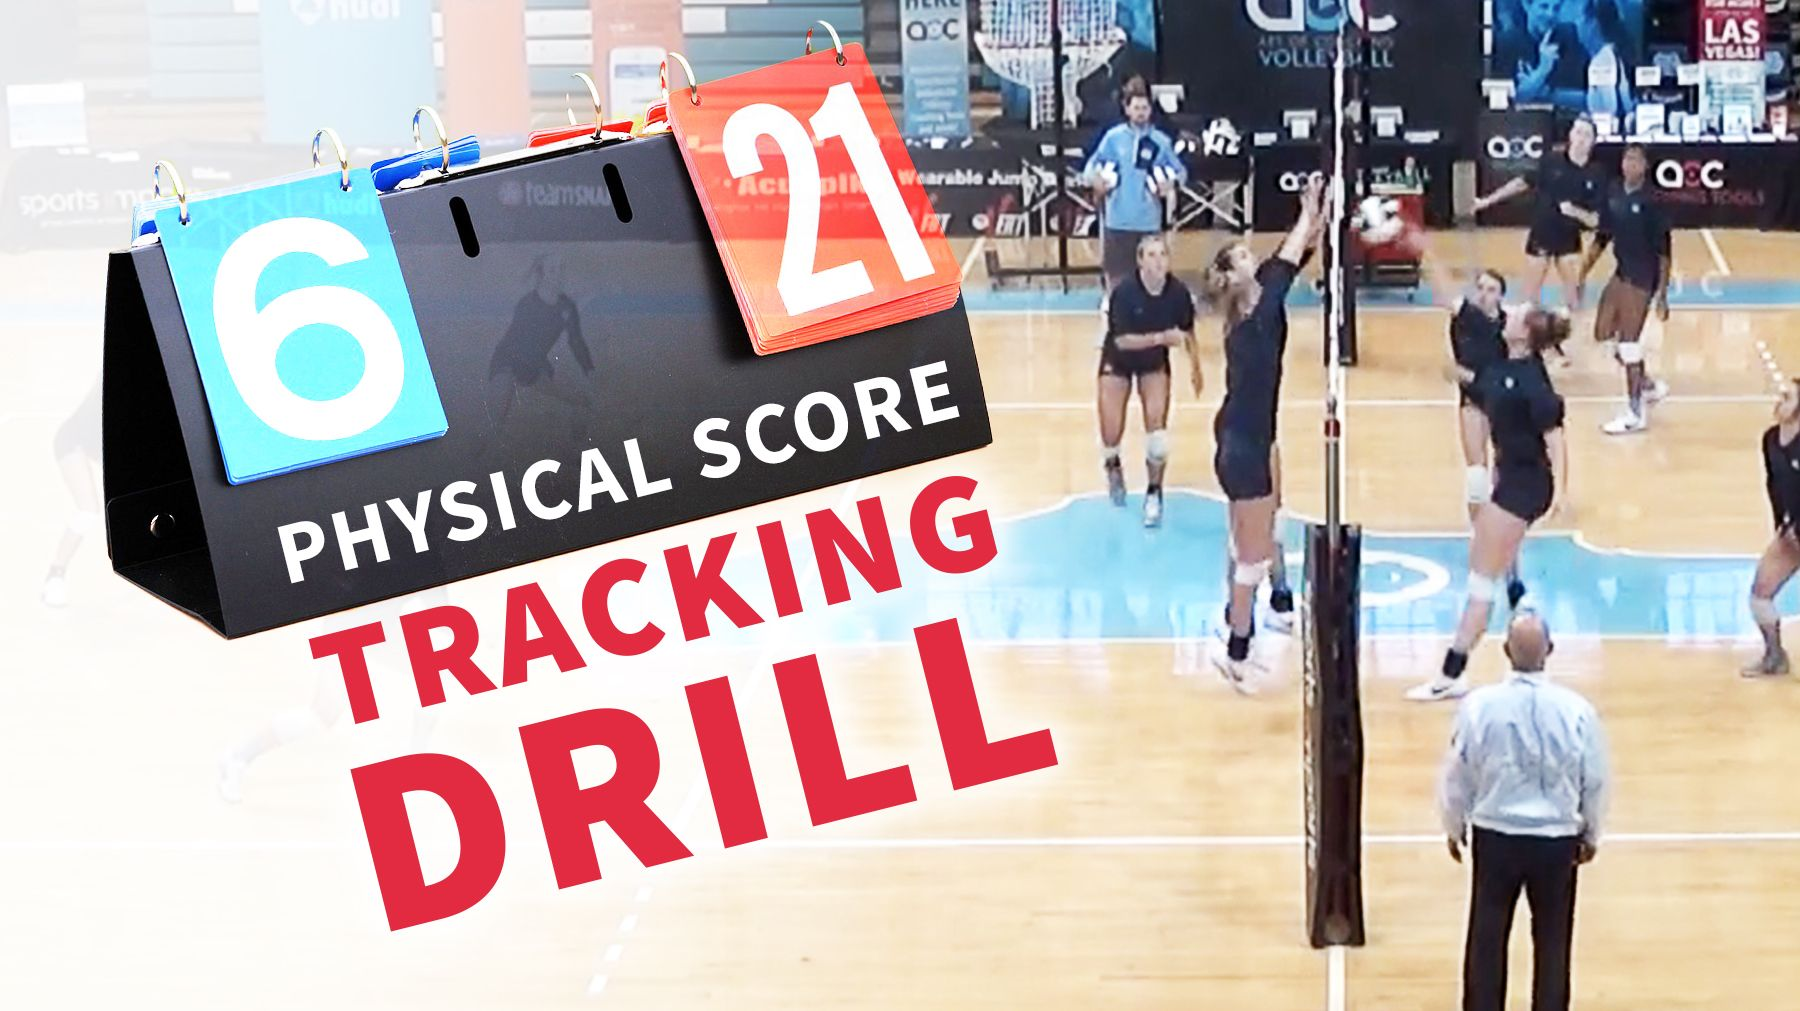 Physical Score Tracking Drill The Art Of Coaching Volleyball Coaching Volleyball Physics Drill